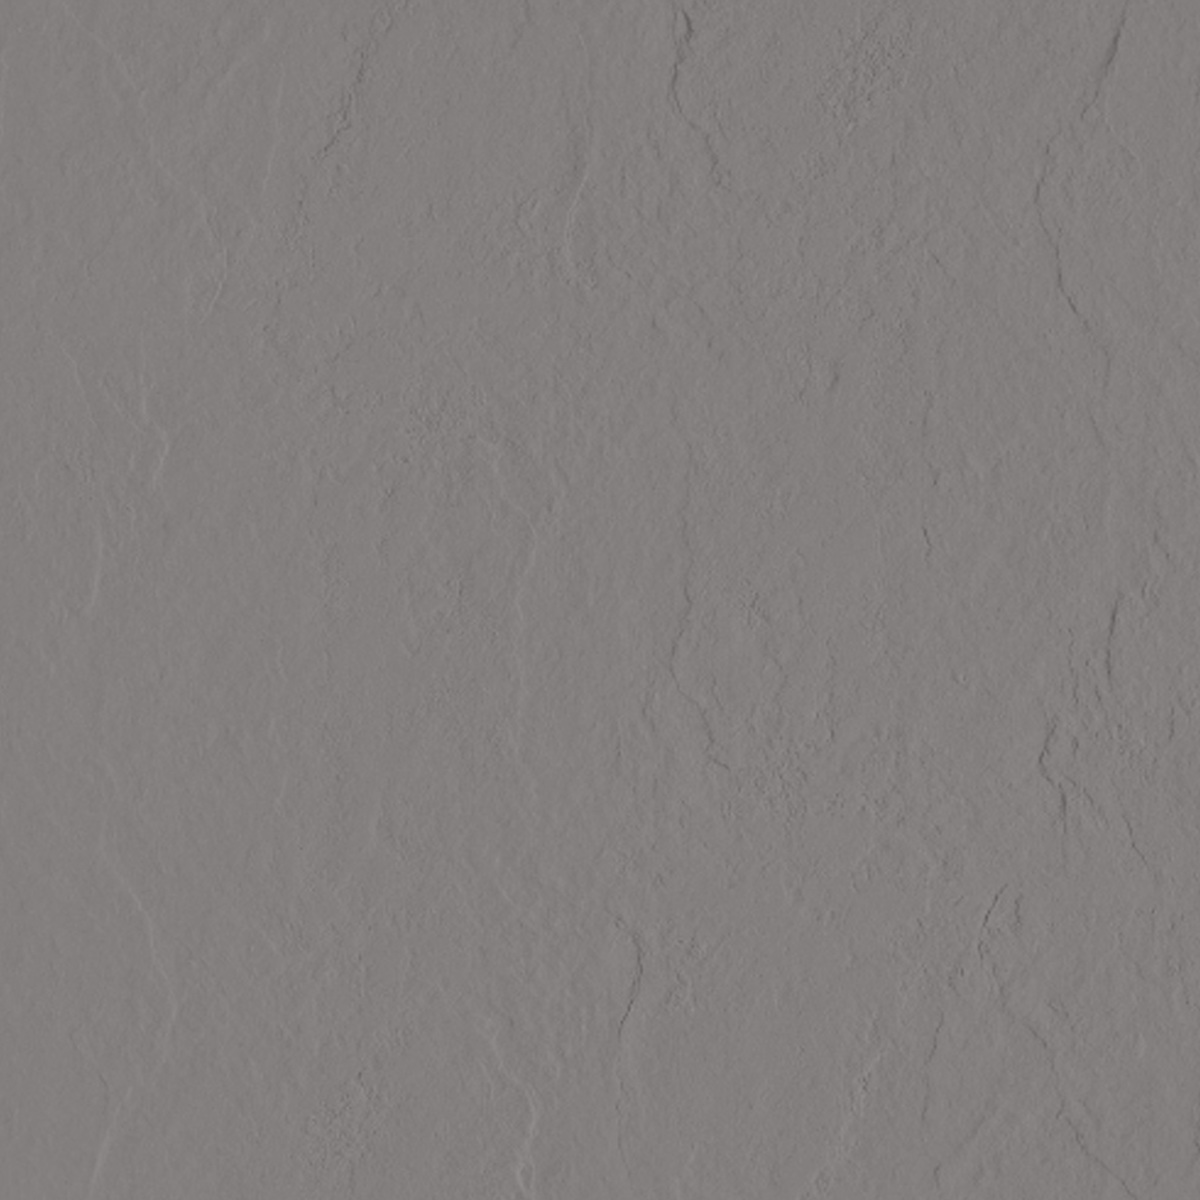 Tiles - PURE - Textured Grey 300x600mm (8 pieces)